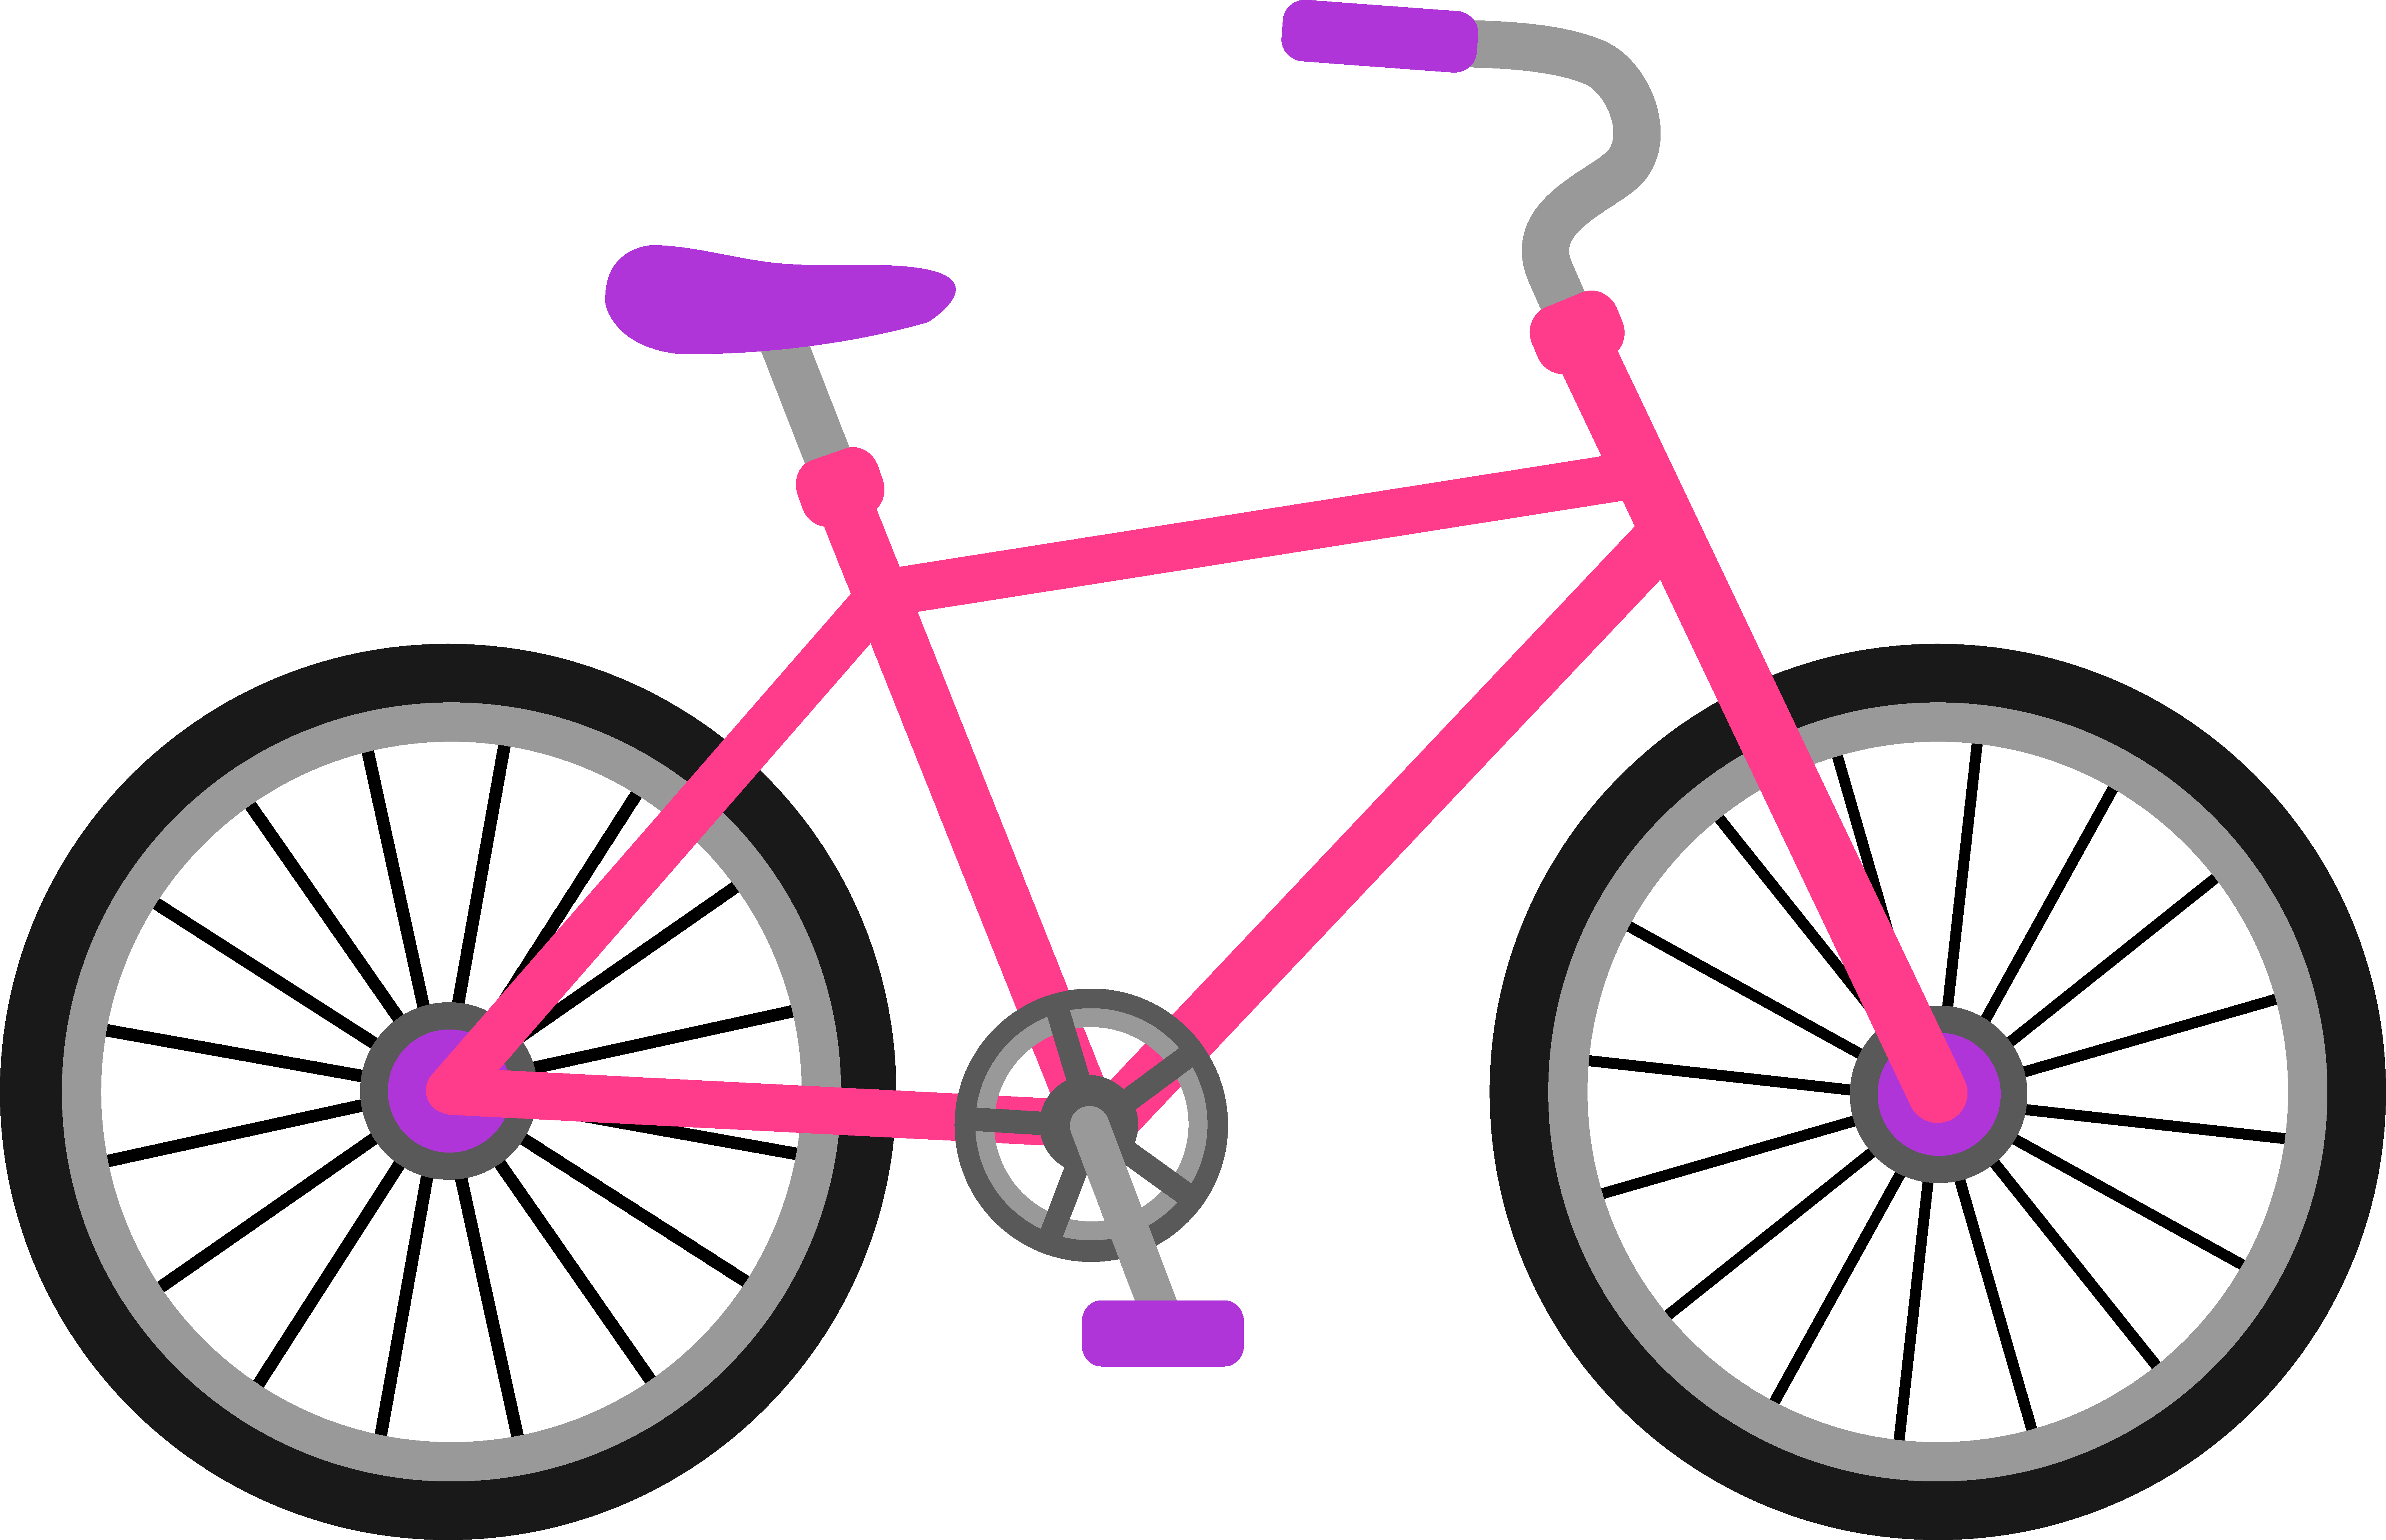 Panda free images bicycleclipart. Bicycle clipart